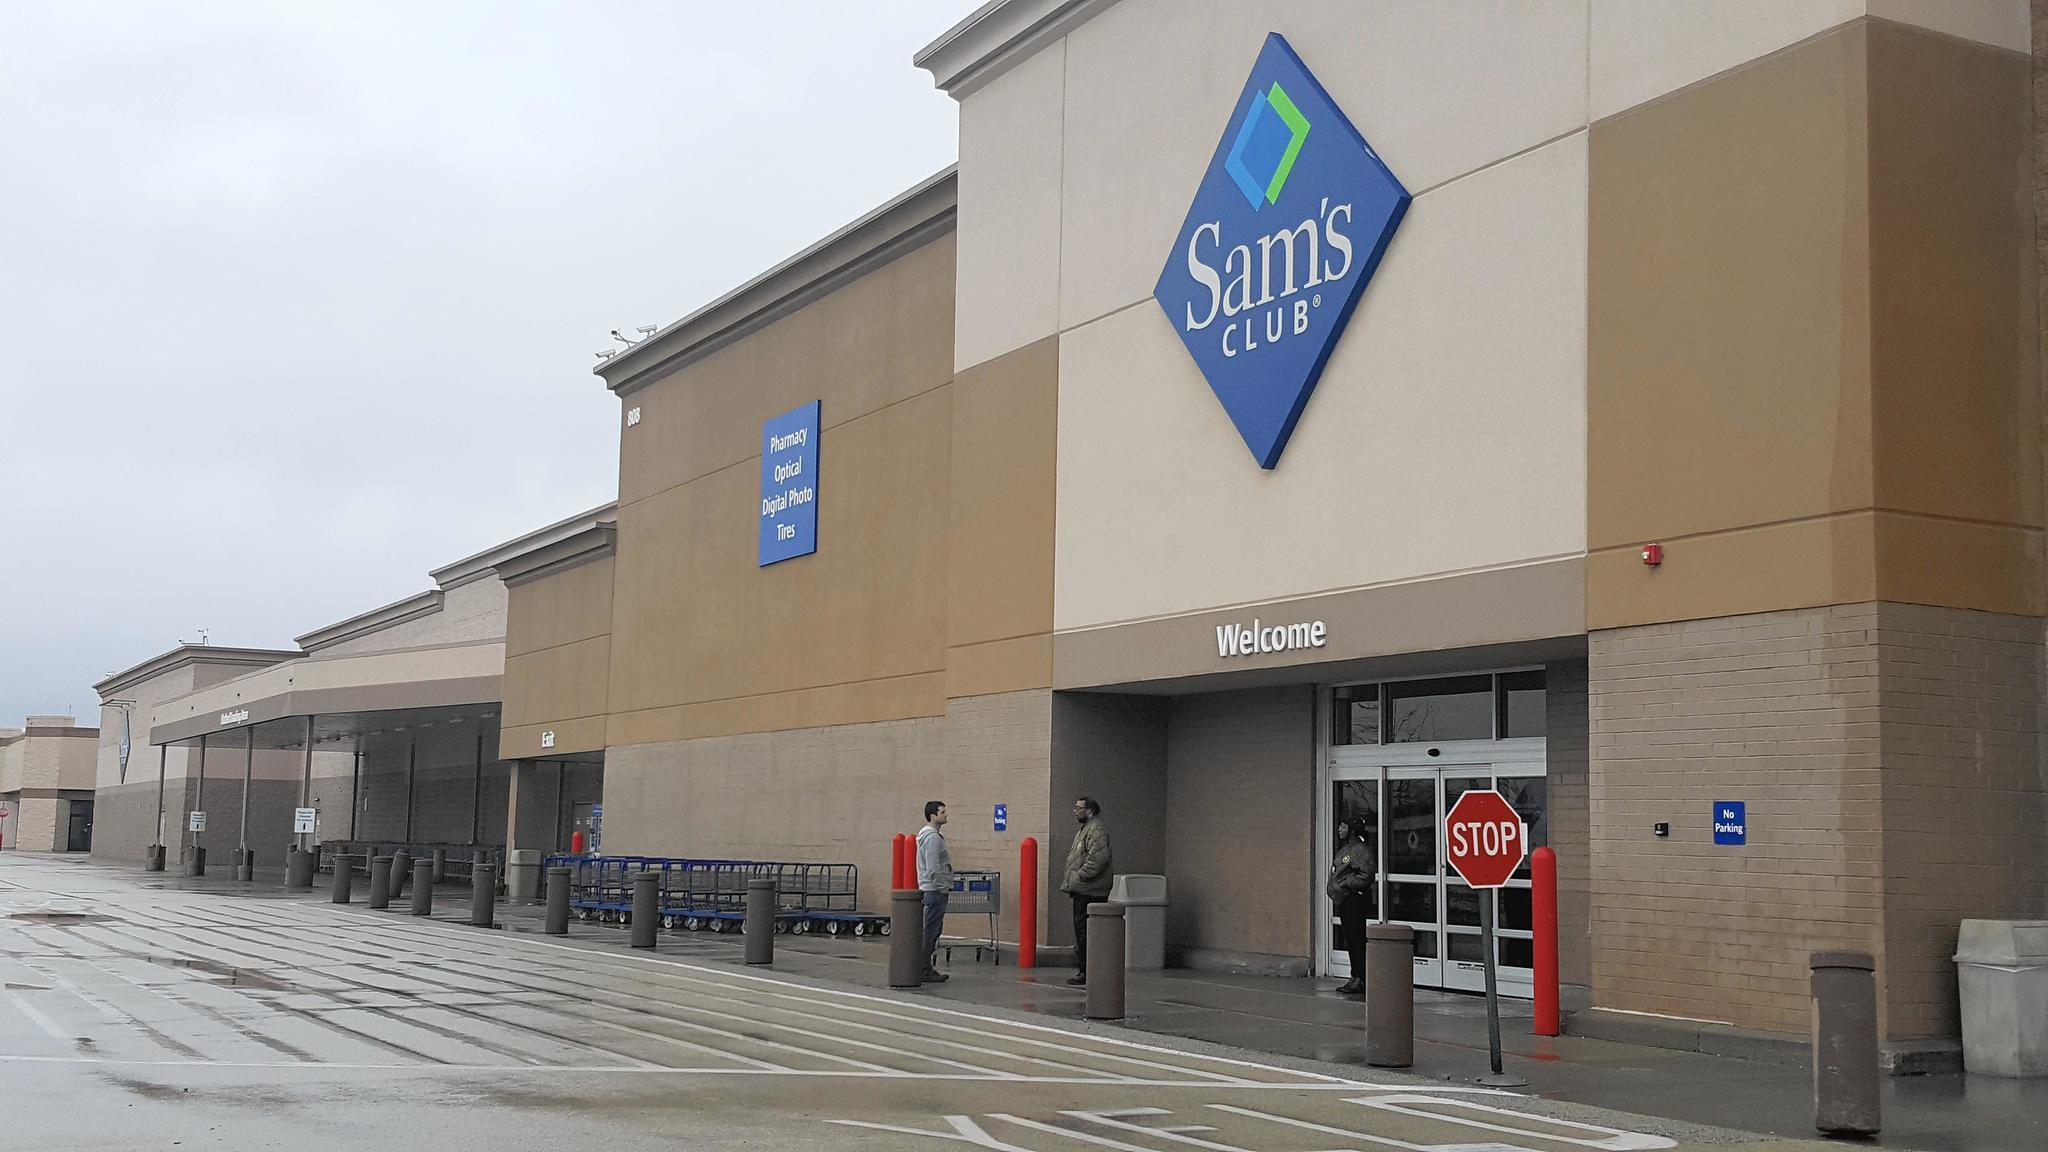 The closing of 63 Sam's Club stores has big implications for small business